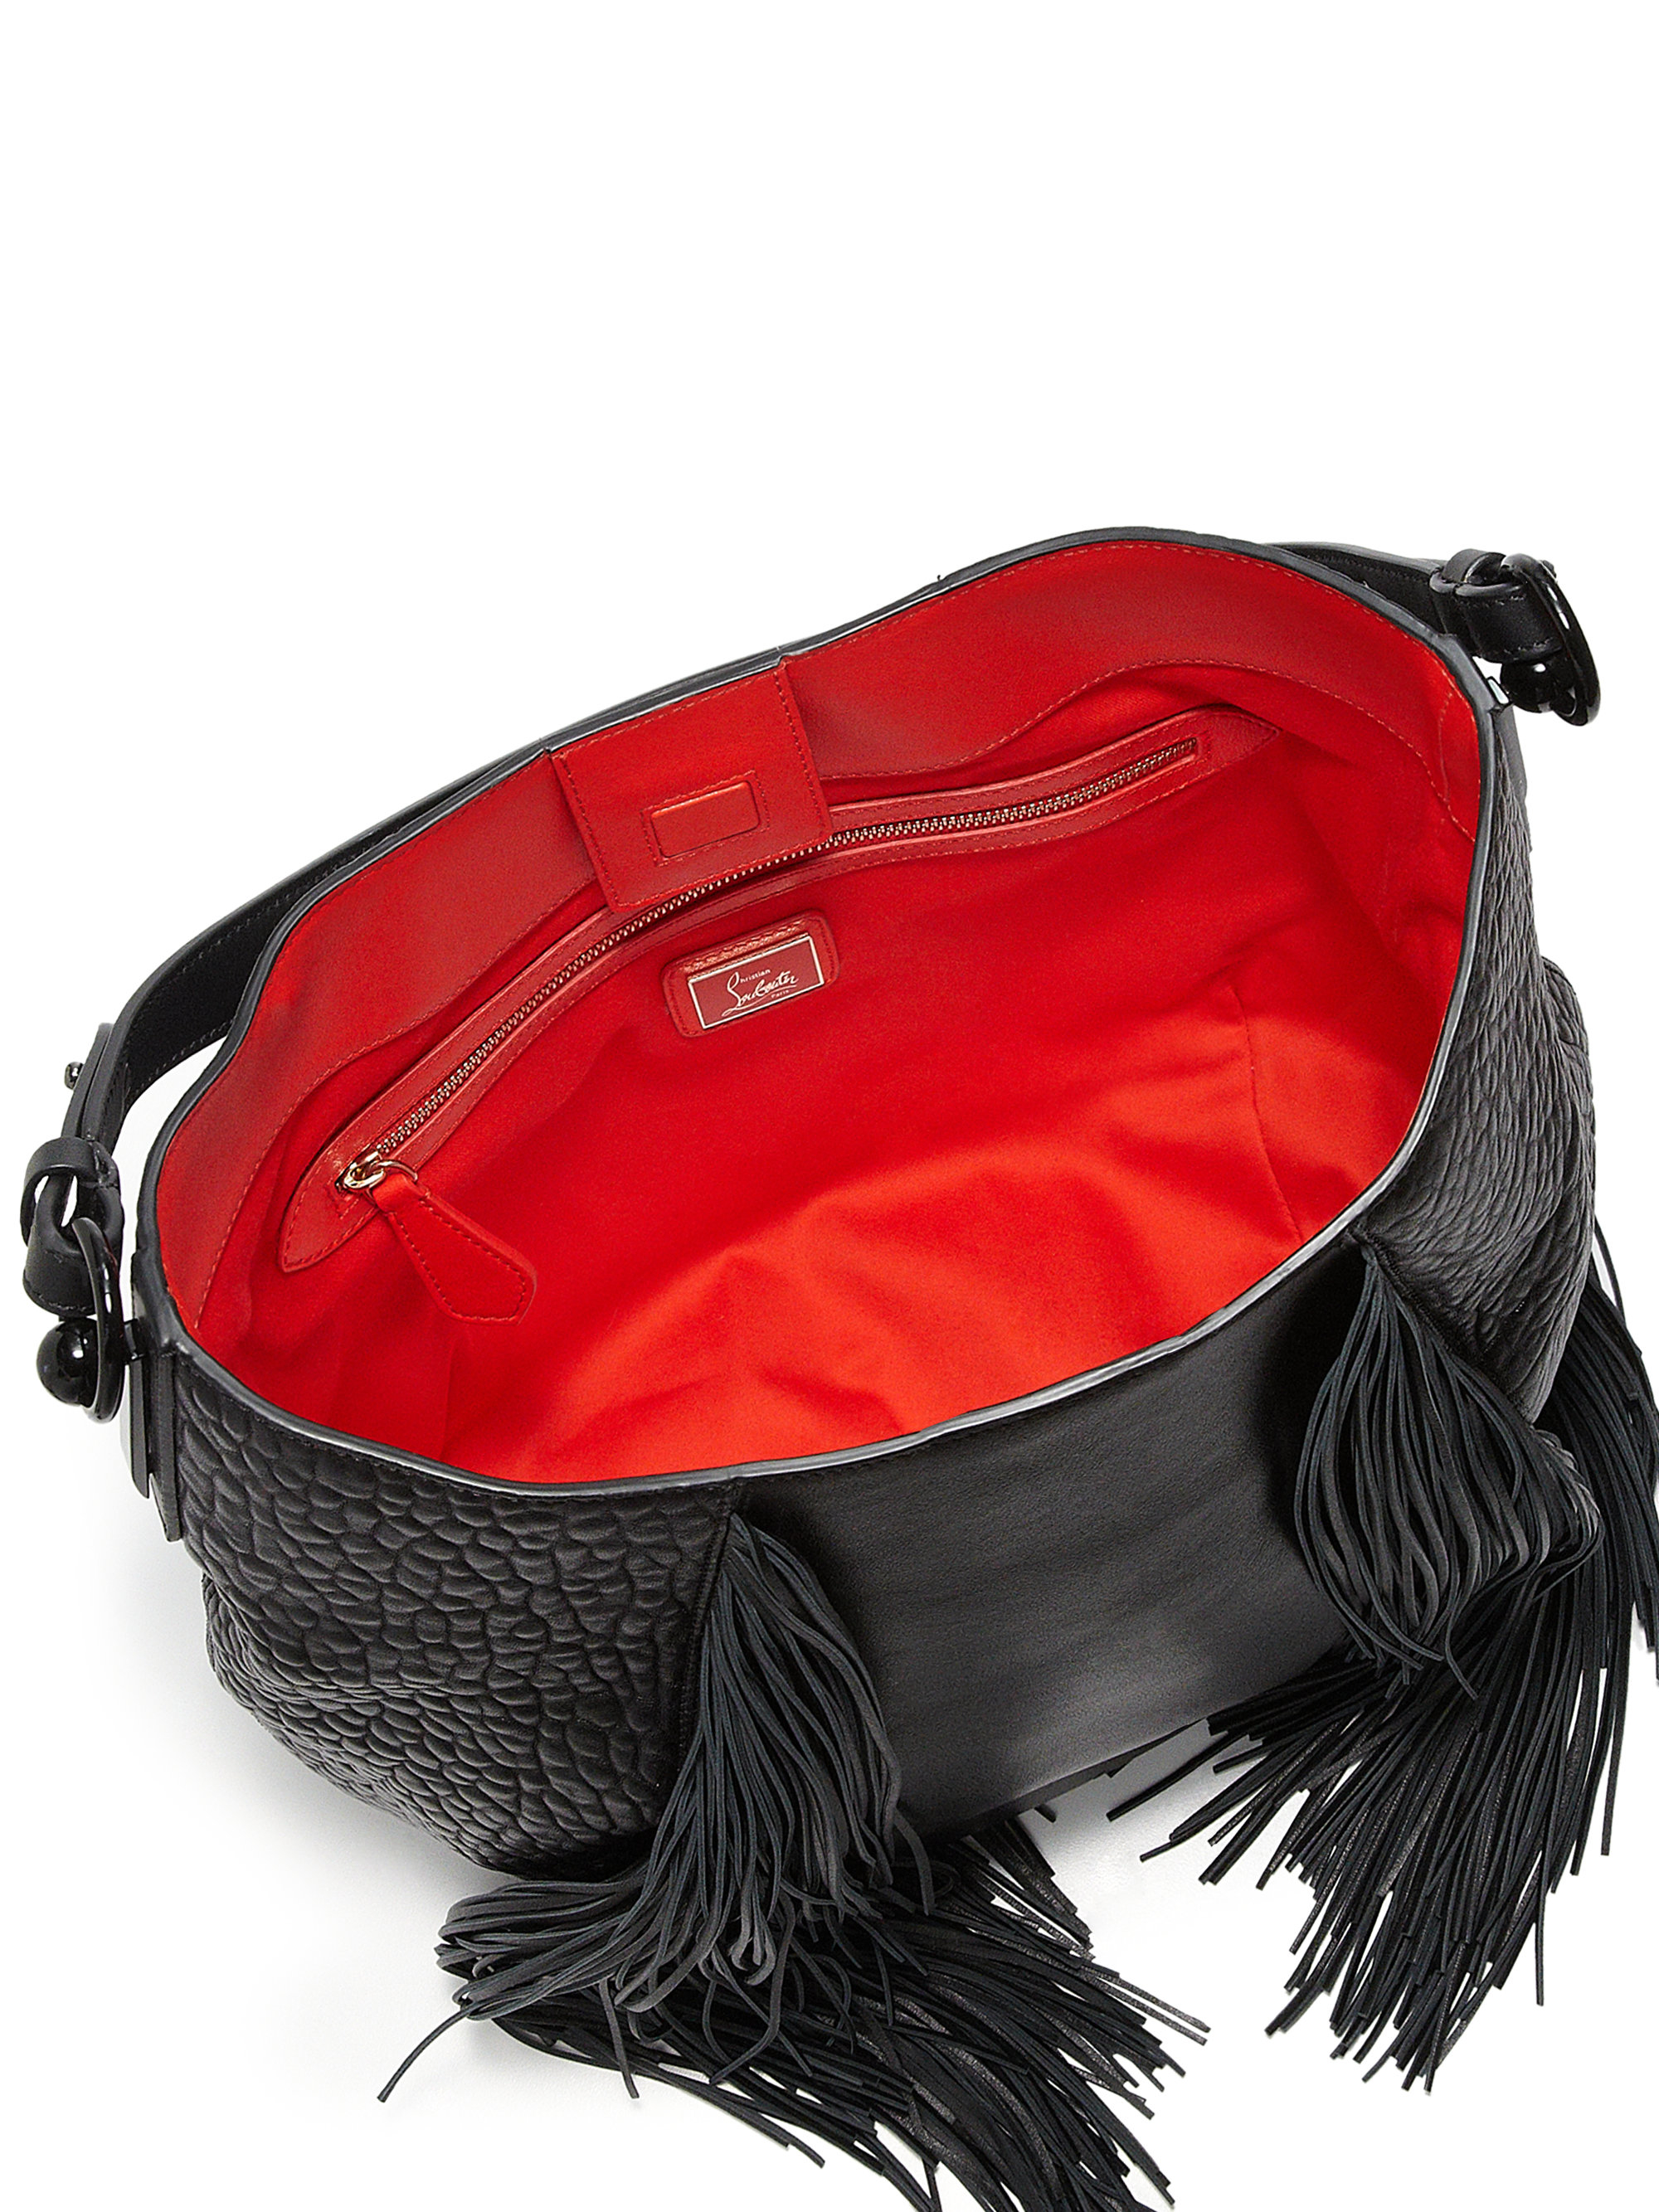 b87a76f68ff Christian Louboutin Black Lucky L Fringed Pebbled Leather Hobo Bag